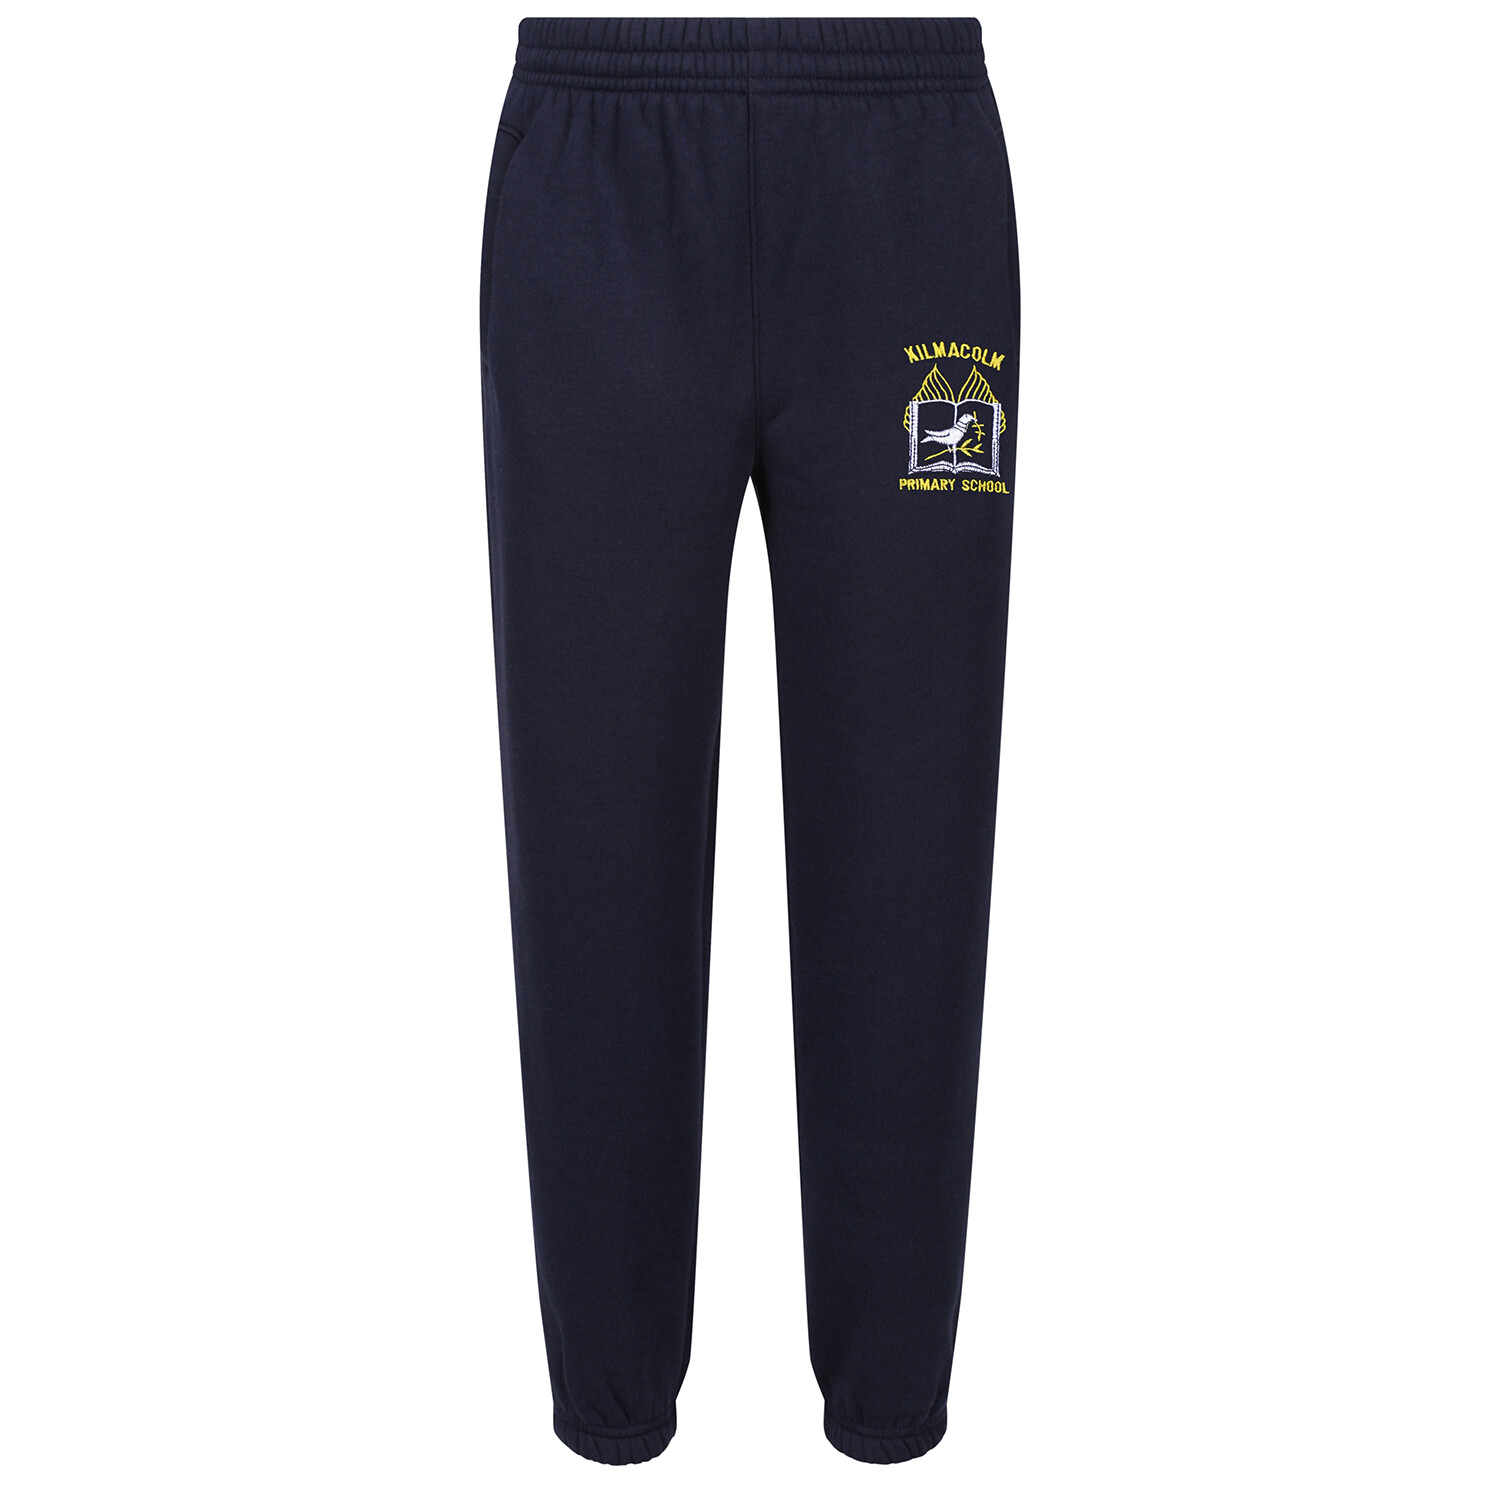 Kilmacolm Jog Pant for PE & Outdoor Activity